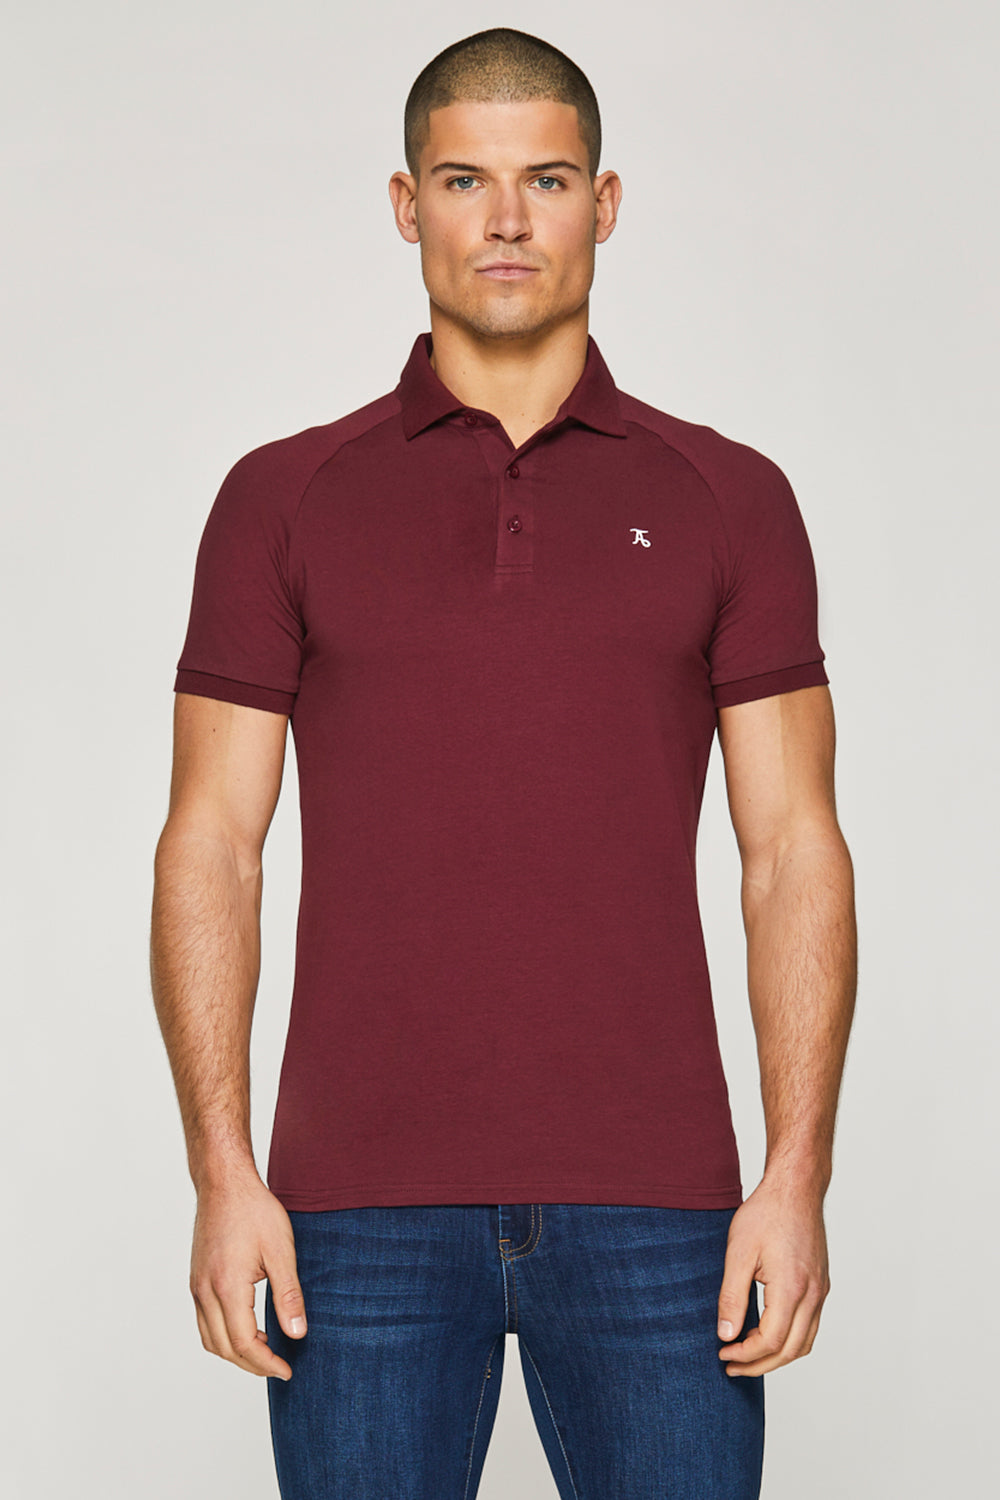 Essential Polo Shirt in Burgundy